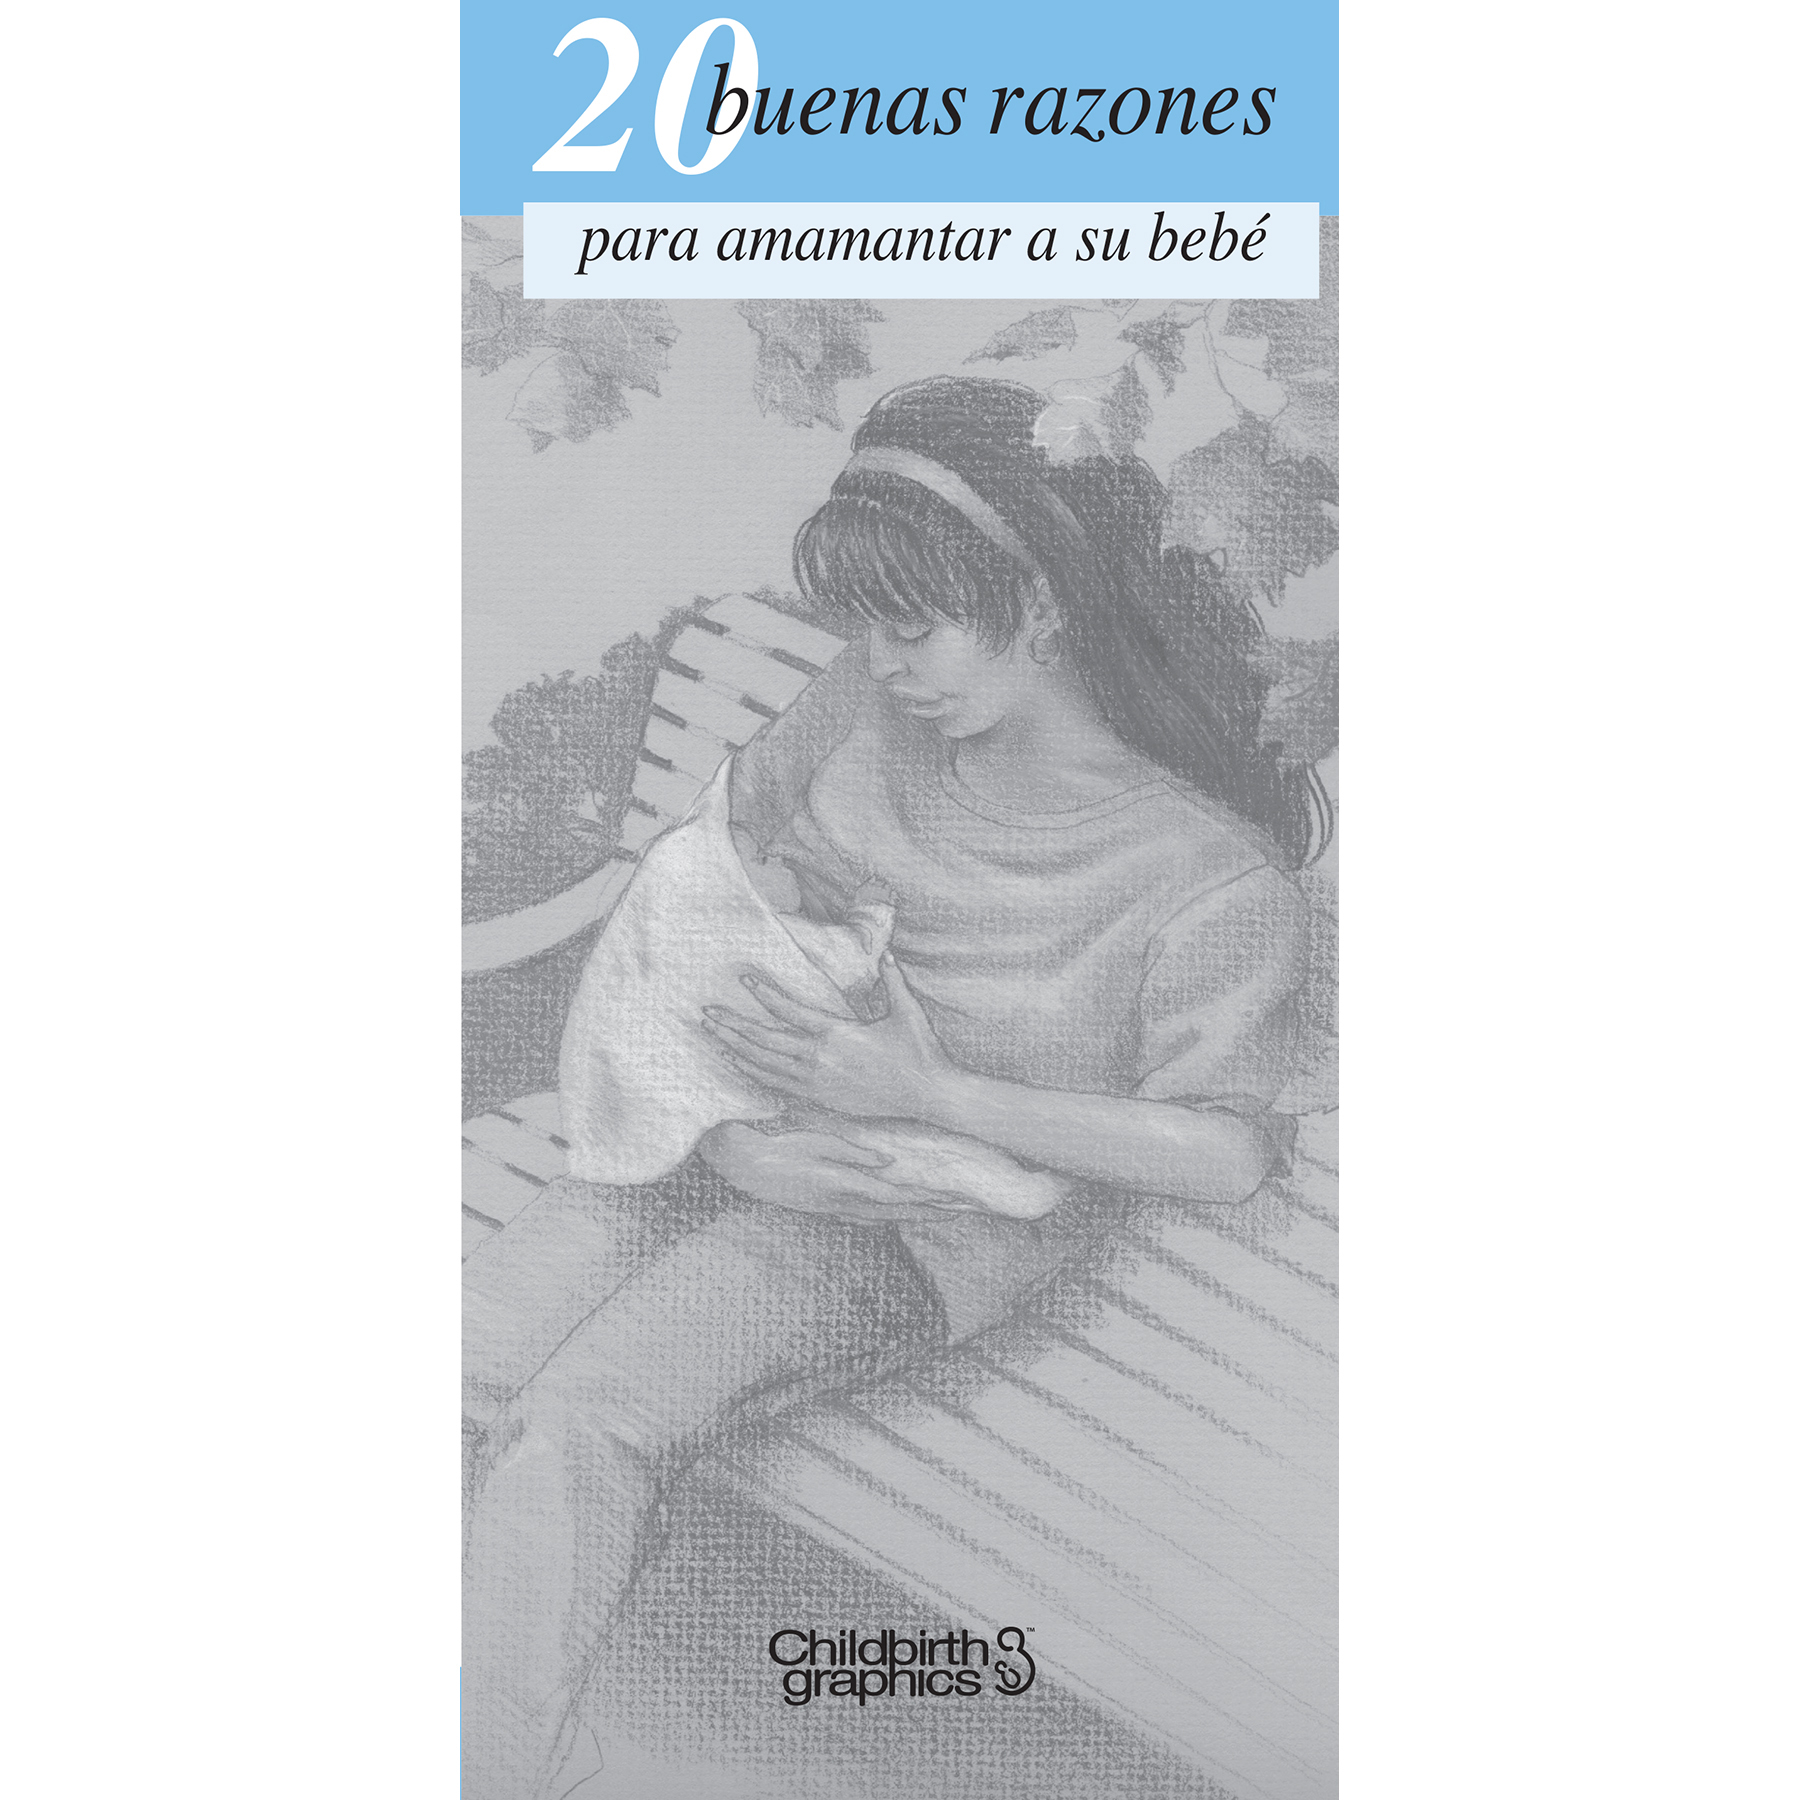 20 great reasons to breastfeed 2-color illustrated pamphlet in Spanish cover image shown, encourage new moms to breastfeed, Childbirth Graphics, 38546